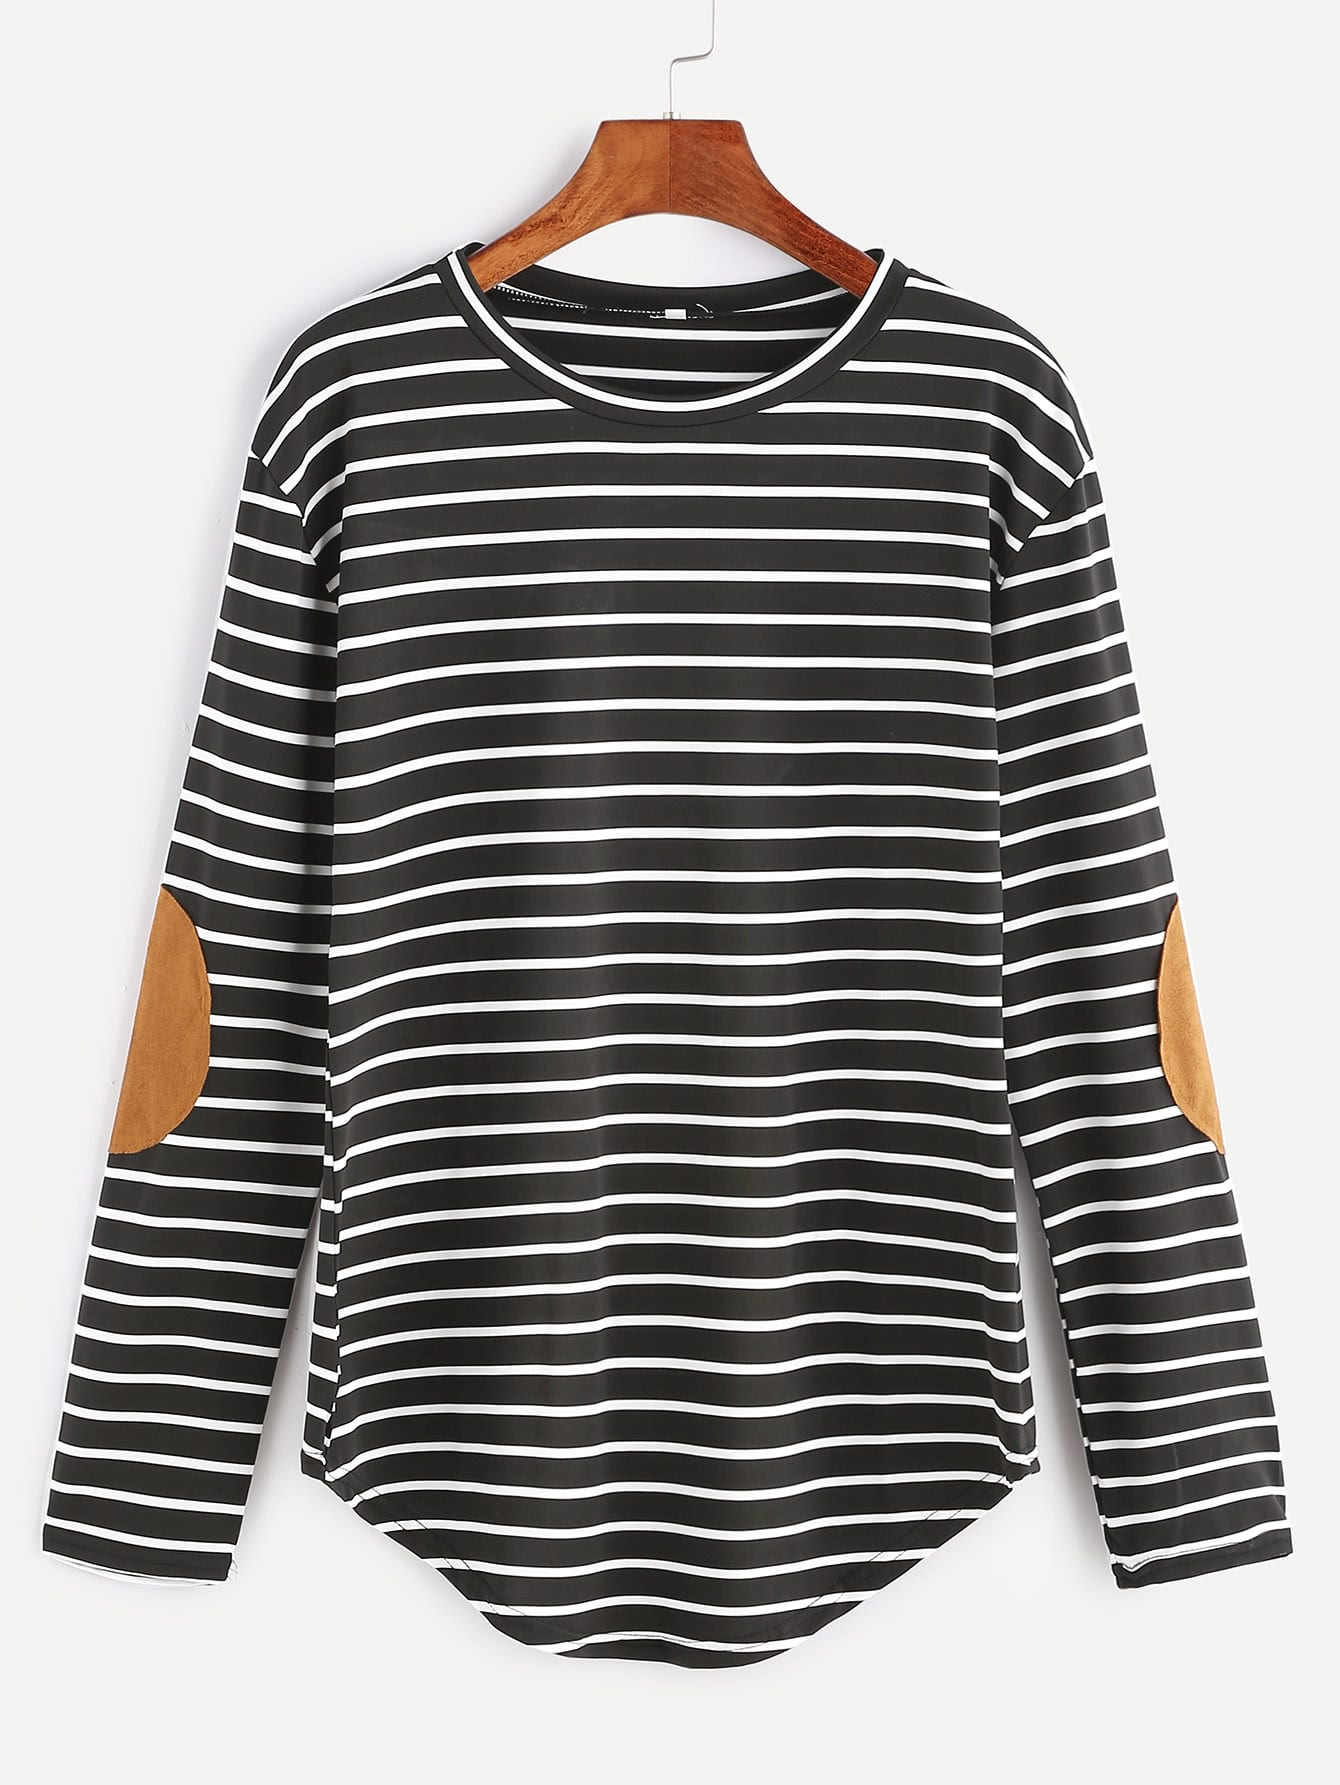 Black Elbow Patch Striped T-shirt striped elbow patch curved hem t shirt